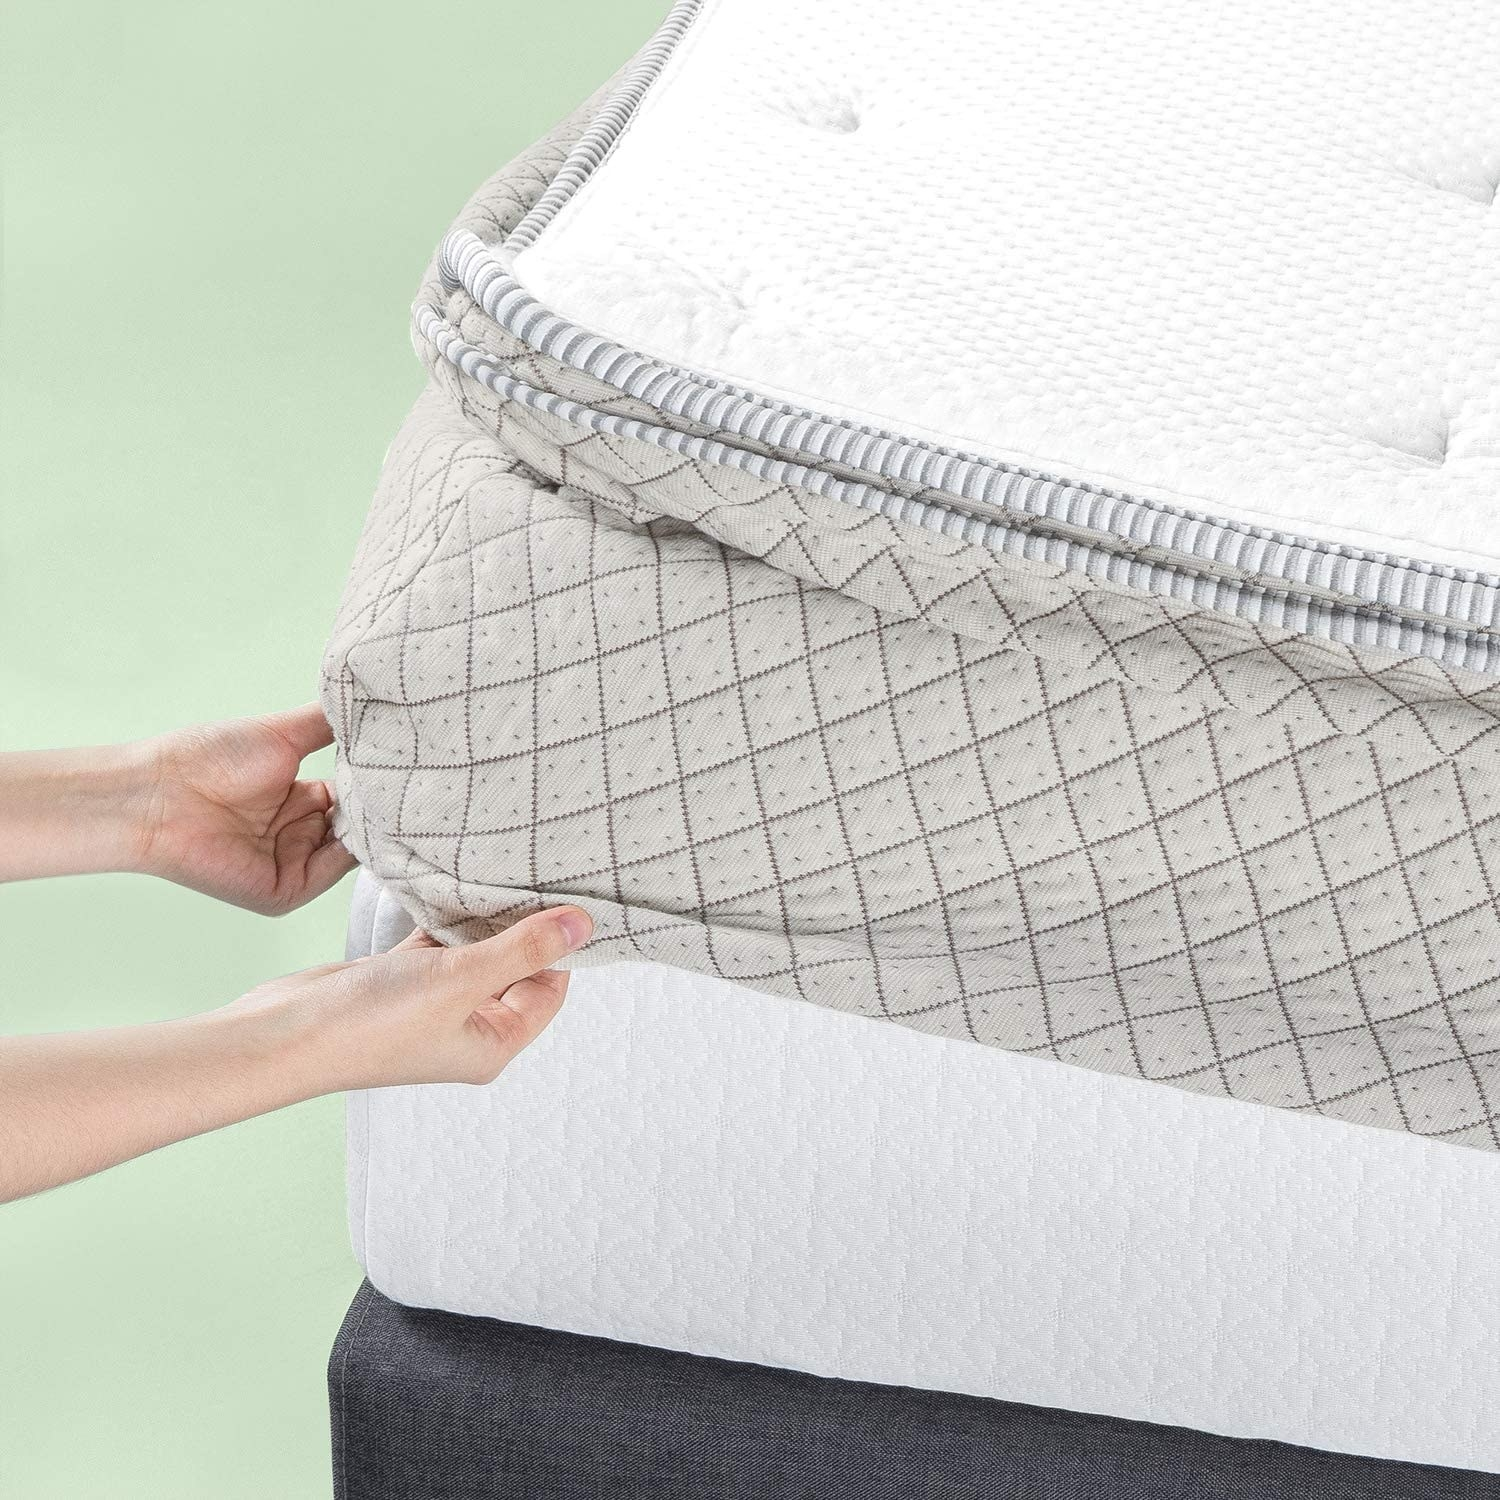 hands putting one corner of the pad onto a mattress